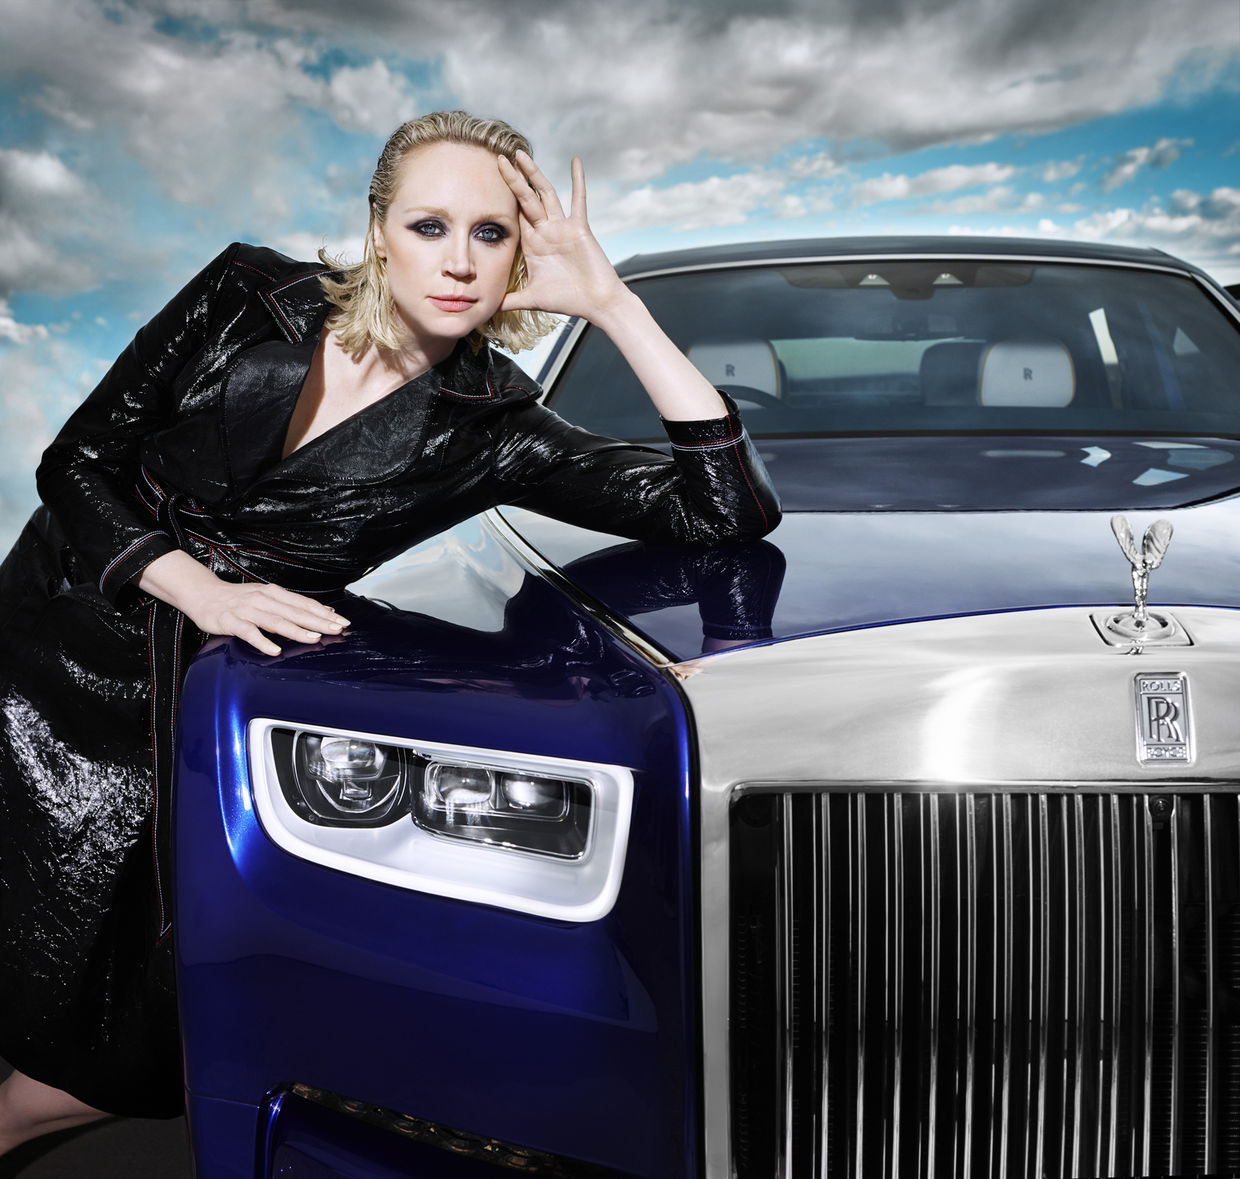 ROLLS-ROYCE PHANTOM SHOT BY BRITISH PHOTOGRAPHER RANKIN - Game of Thrones star Gwendoline Christie features alongside Phantom in short film